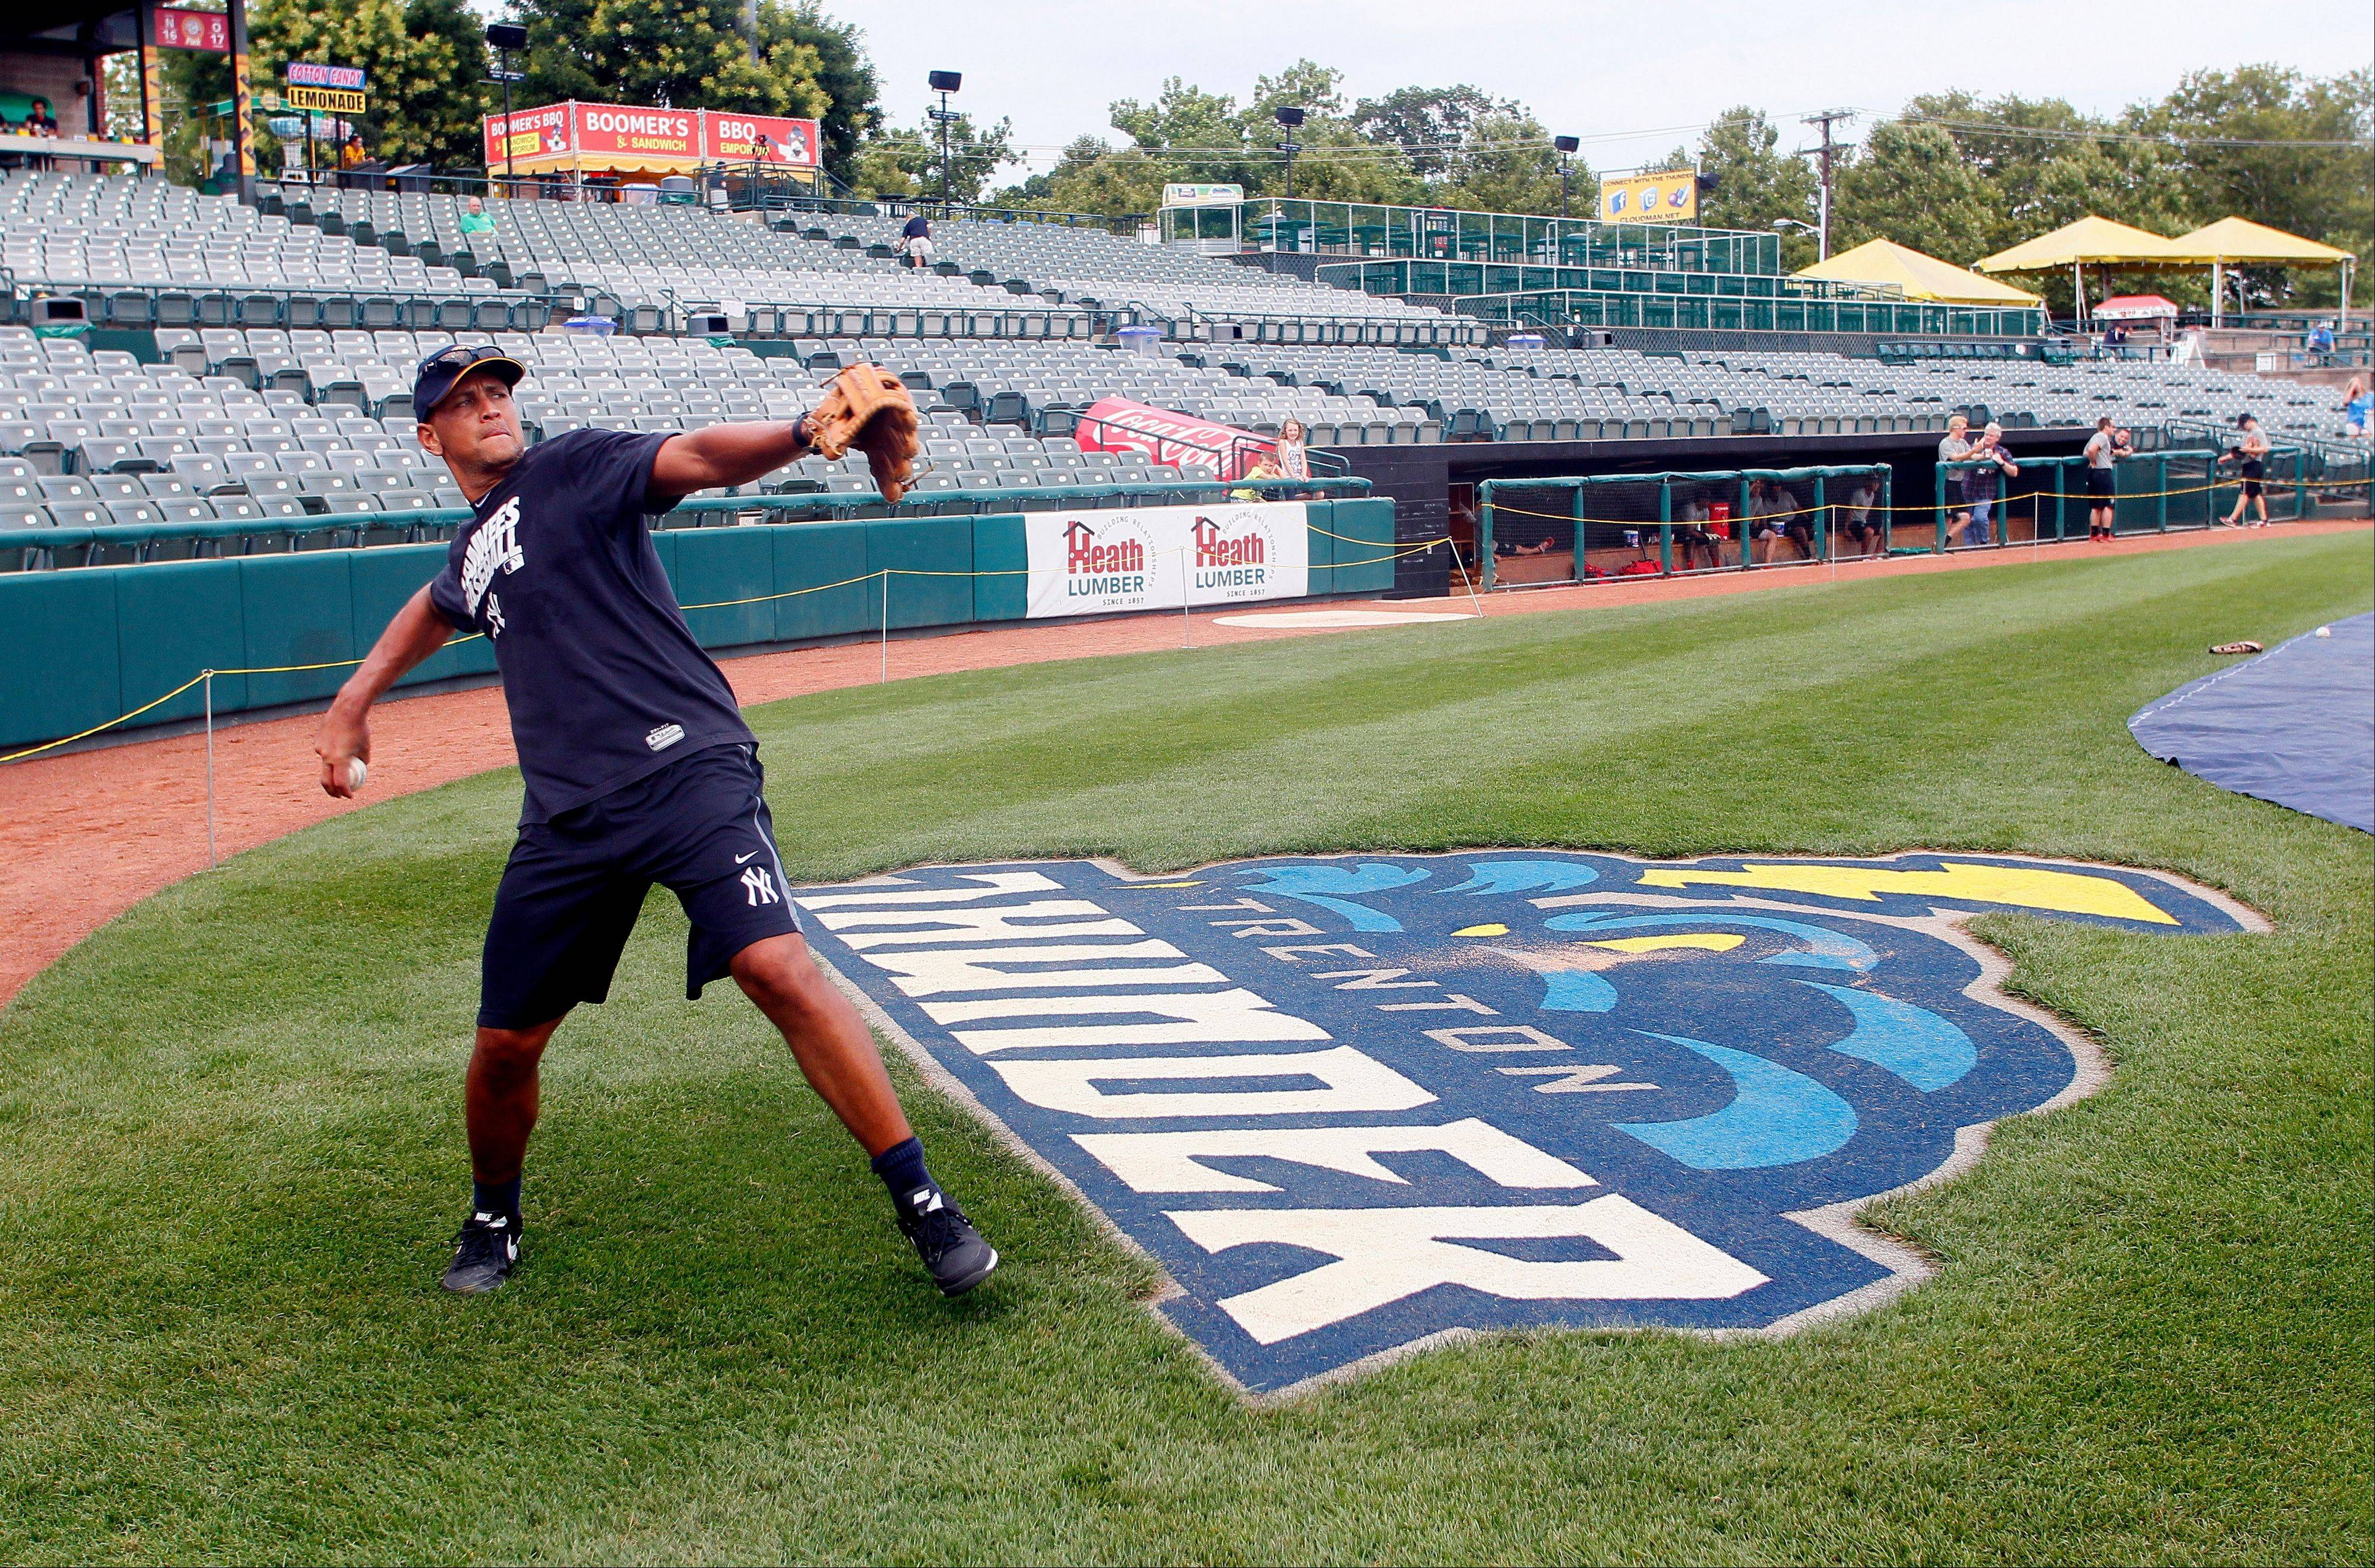 New York Yankees' Alex Rodriguez warms up before the start of a Class AA baseball game with the Trenton Thunder against the Reading Phillies, Friday, Aug. 2, 2013, Trenton, N.J.